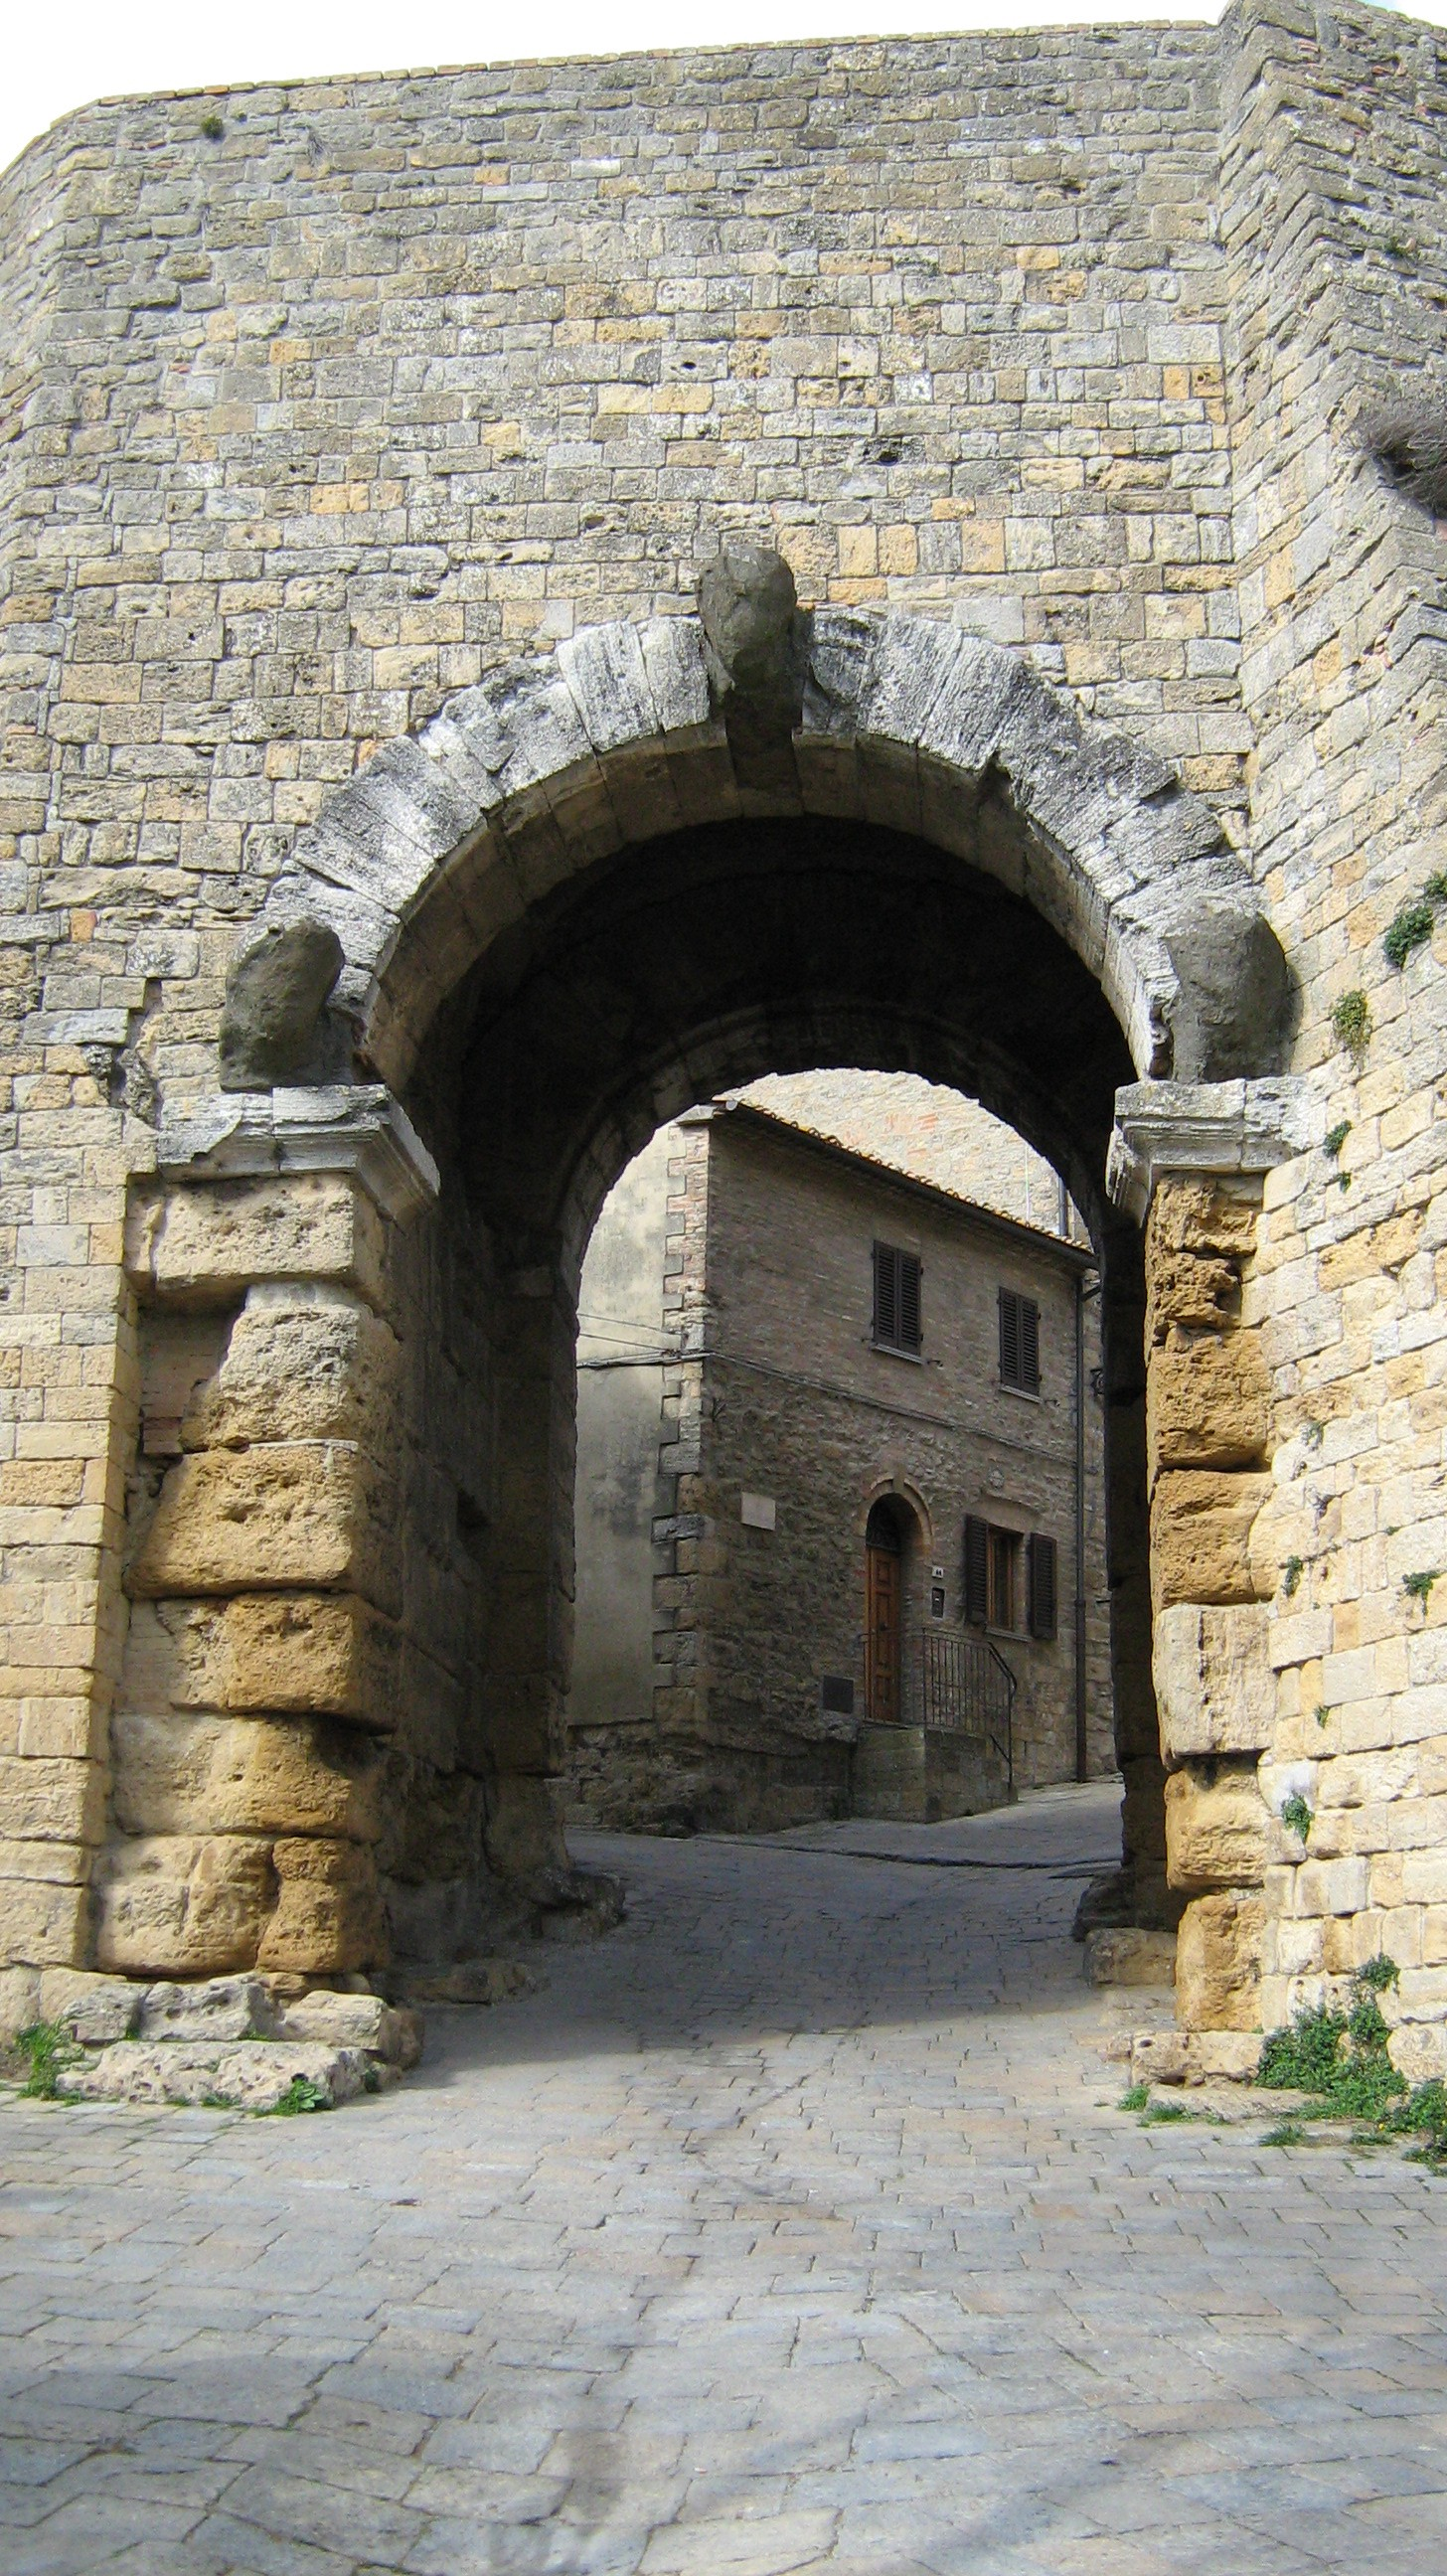 Colour photograph of a medieval arch and house in Volterra